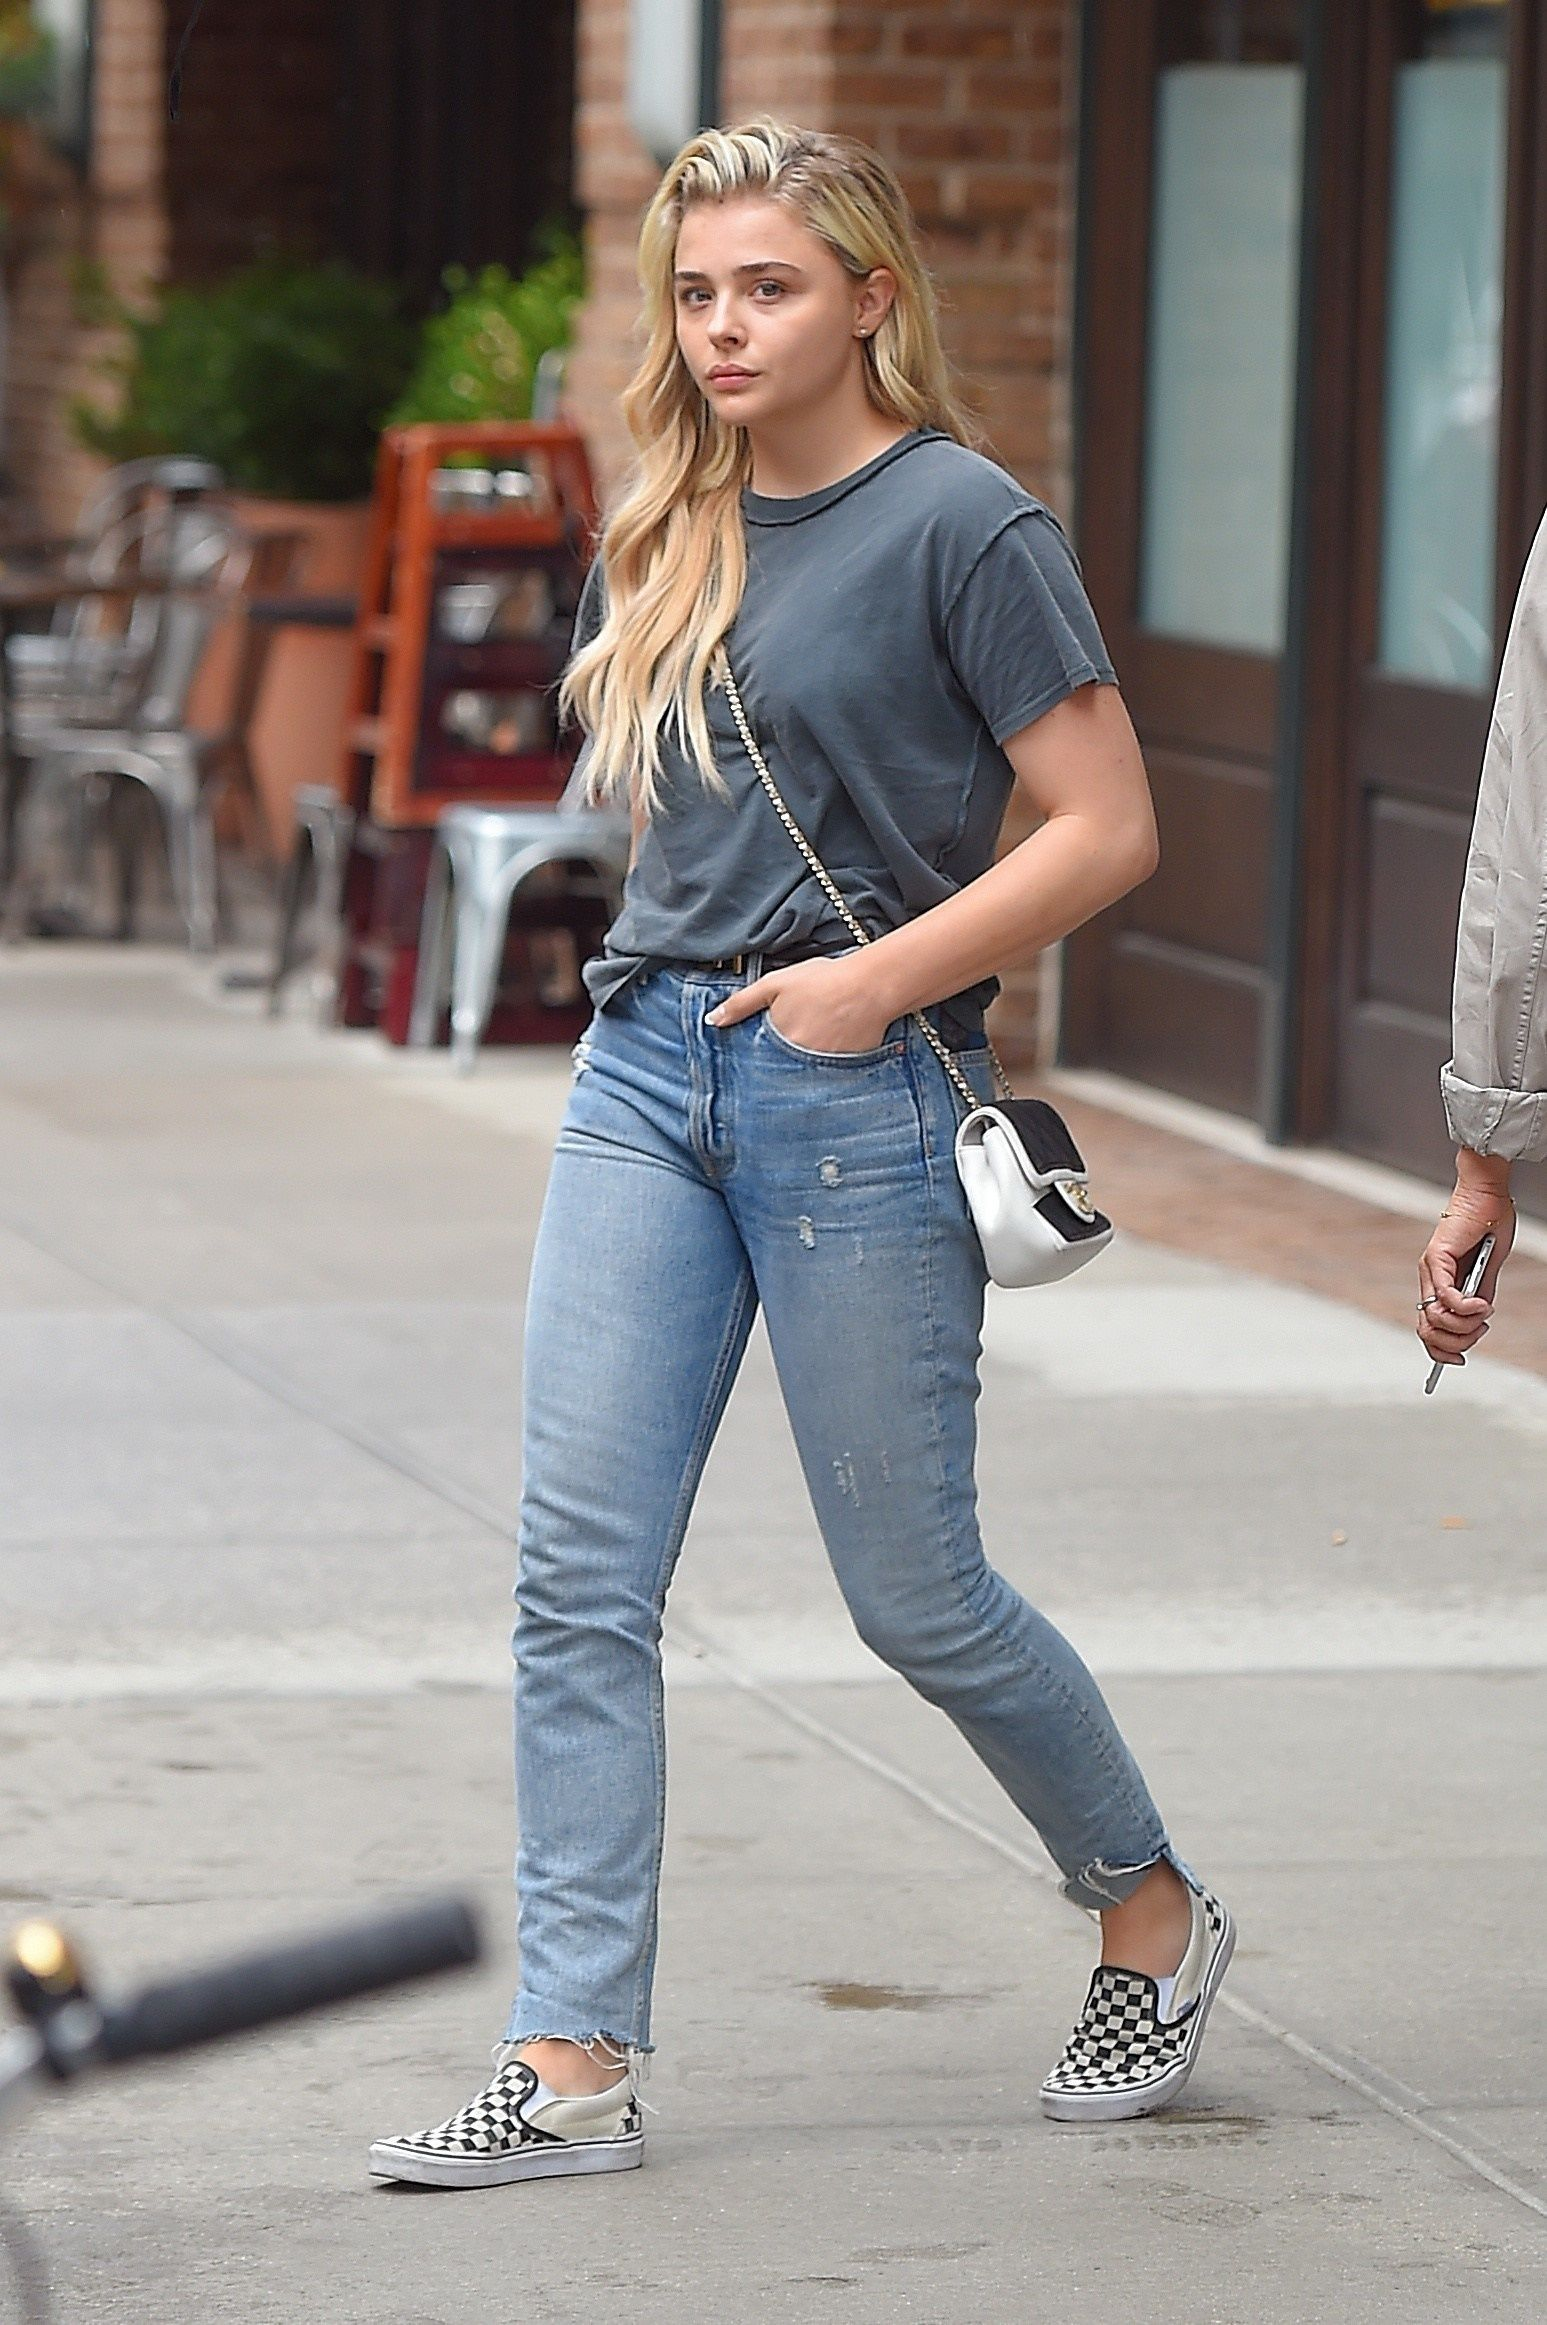 9174c94d Actress Chloe Moretz wearing Vans sneakers & a Chanel bag as she leaves her  #NYC hotel. #brands #Instagram #streetstyle #celebsightings